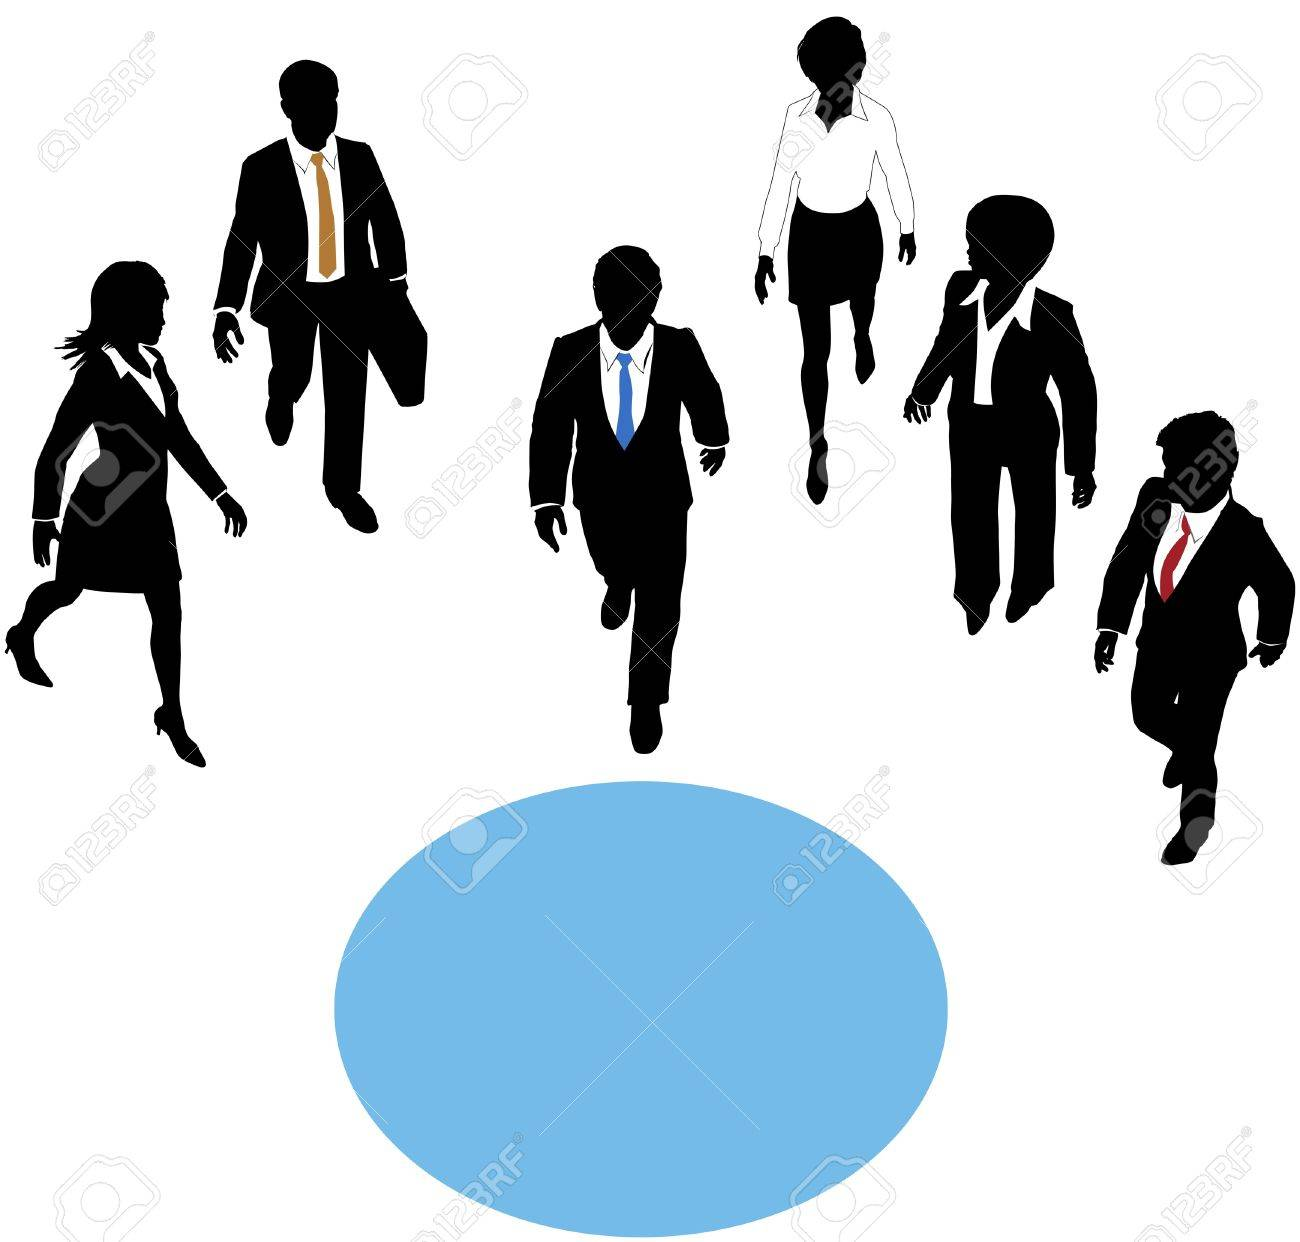 Group of business people walk paths toward a connection copyspace circle Stock Vector - 14232414